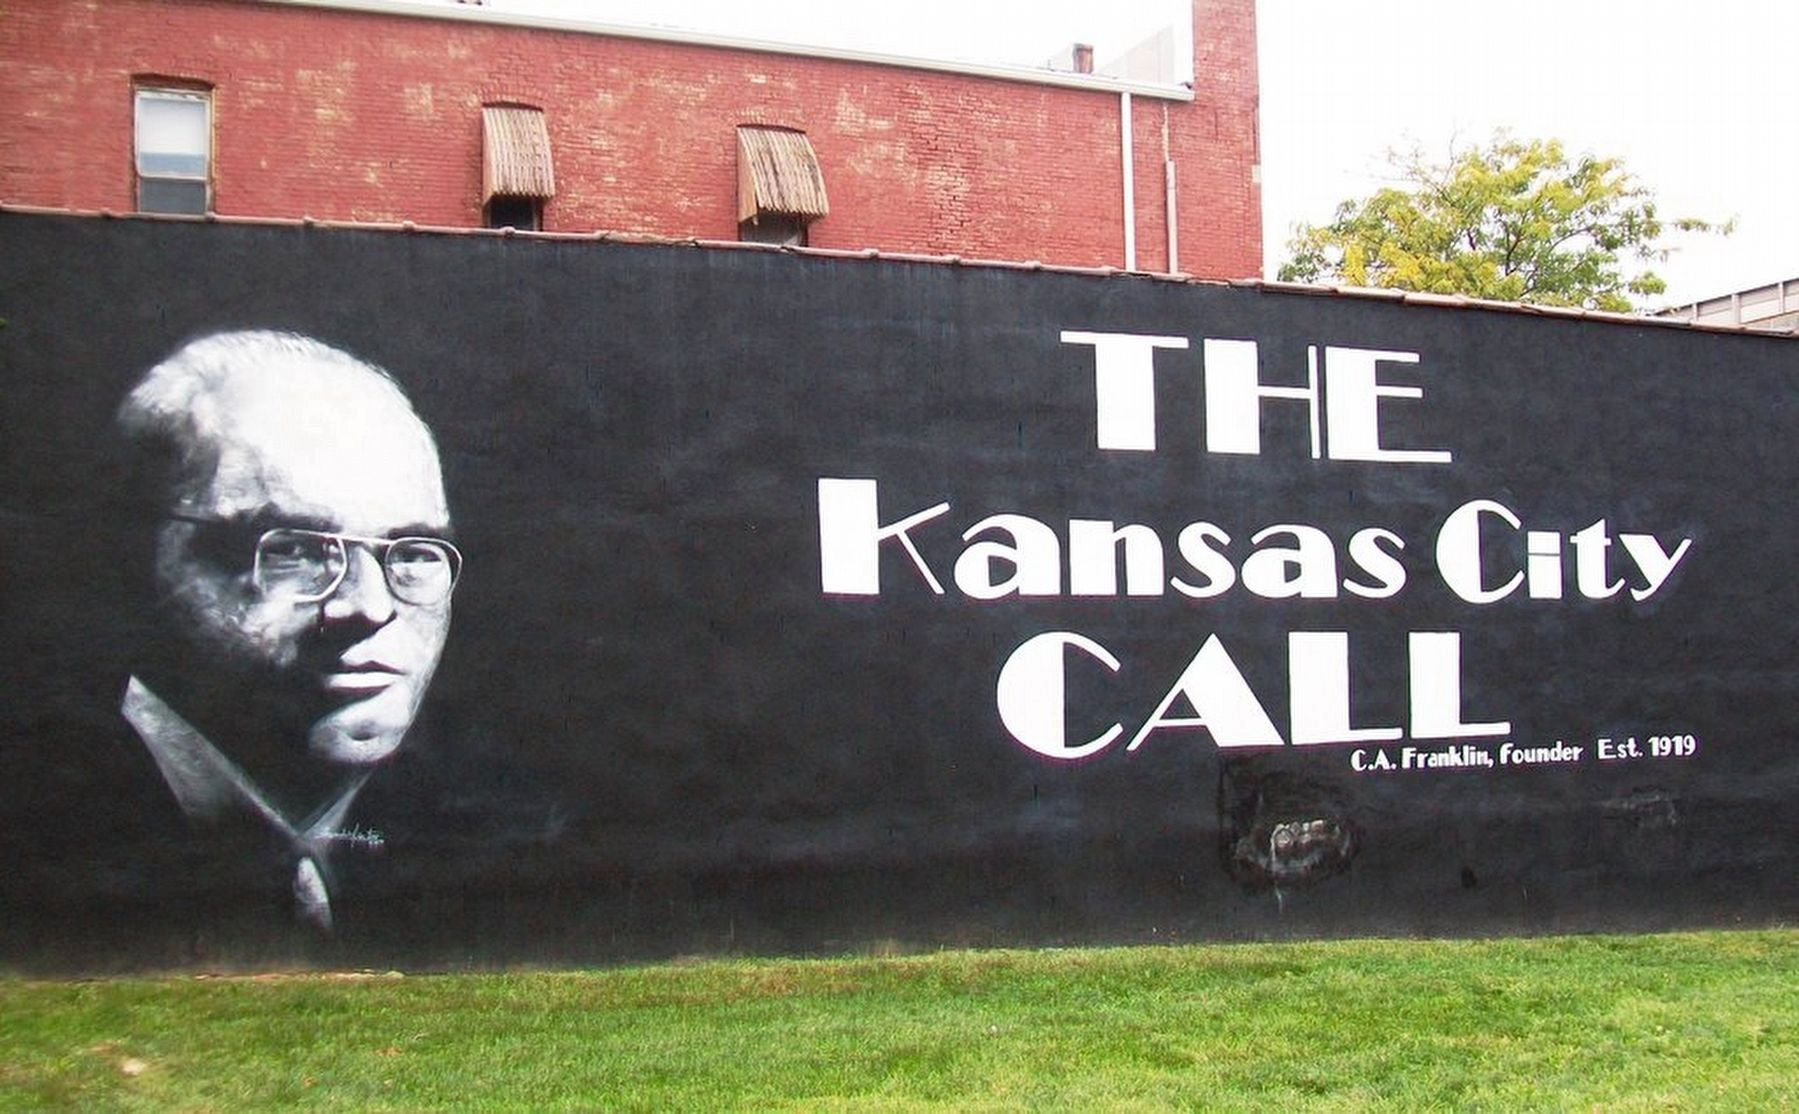 Kansas City Call Building Mural image. Click for full size.